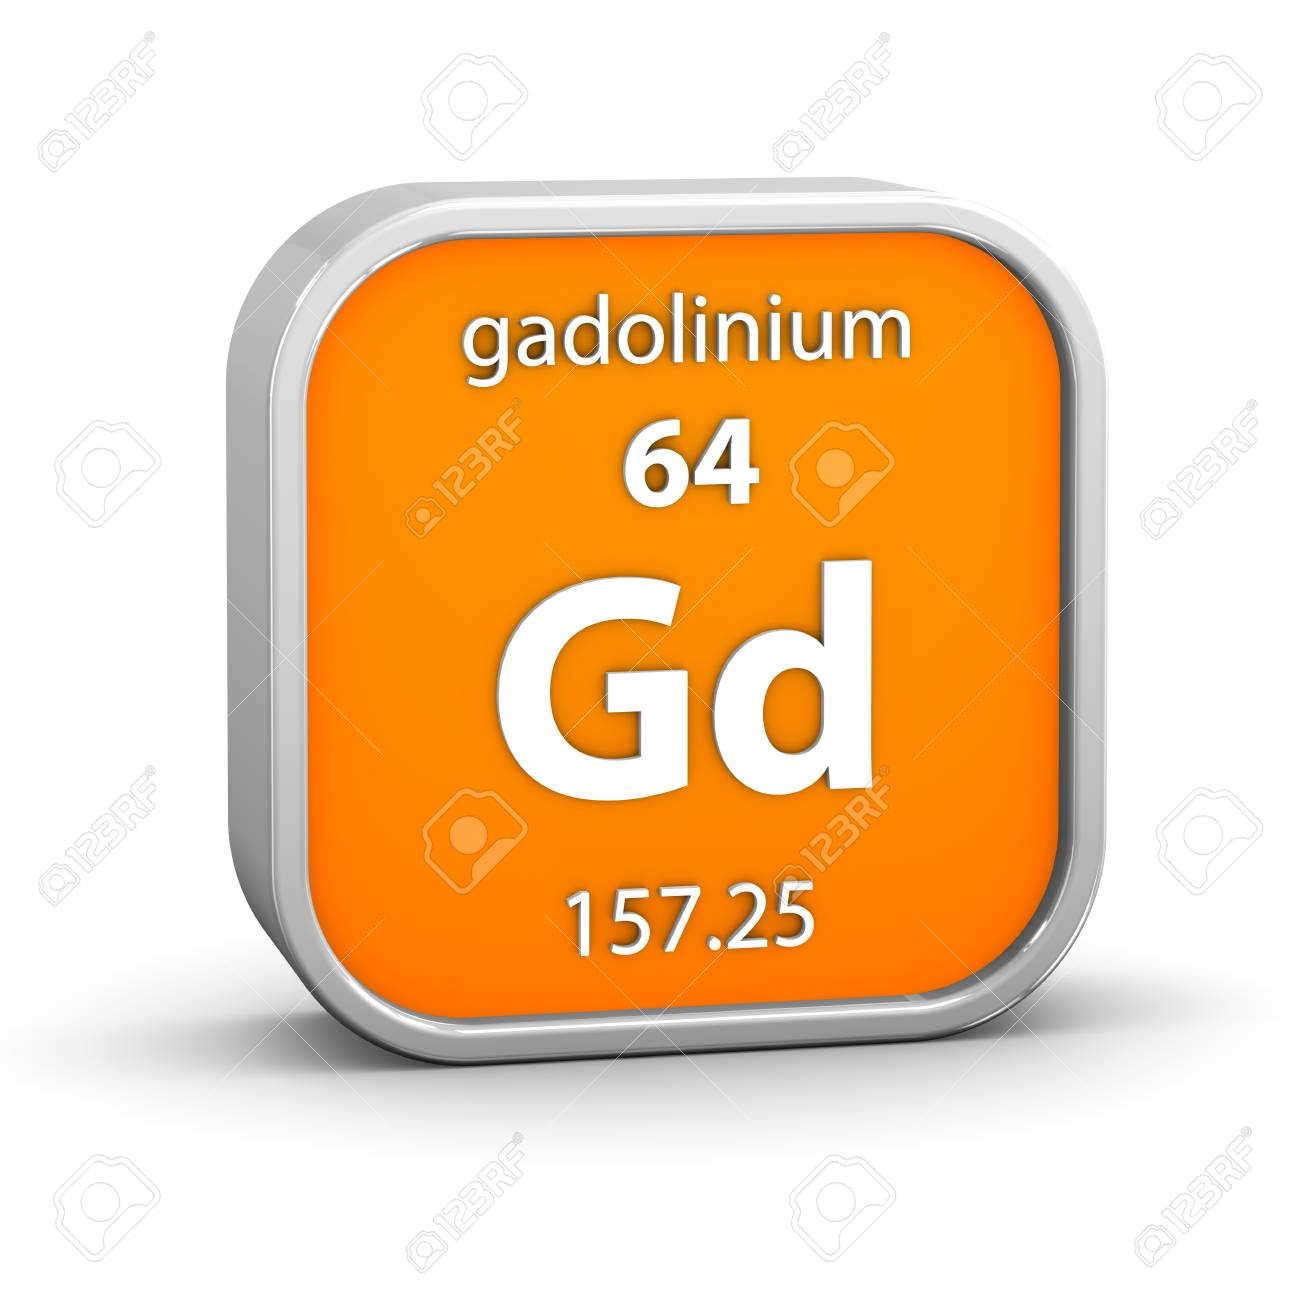 Gadolinium material on the periodic table  Part of a series Stock Photo - 18861205